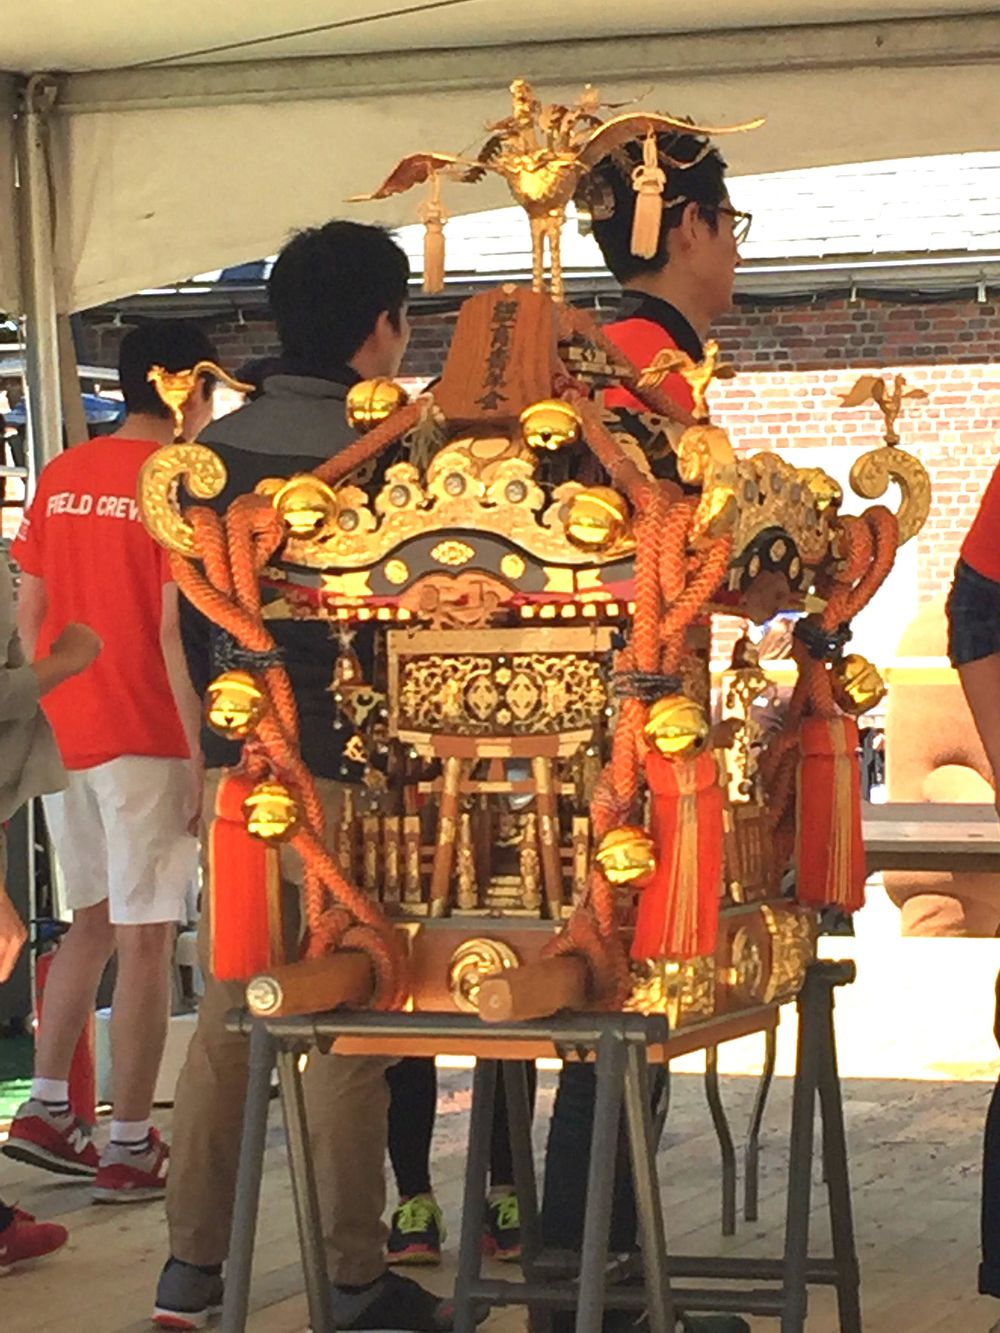 The mikoshi, a portable Shinto shrine carried in the festival parade.